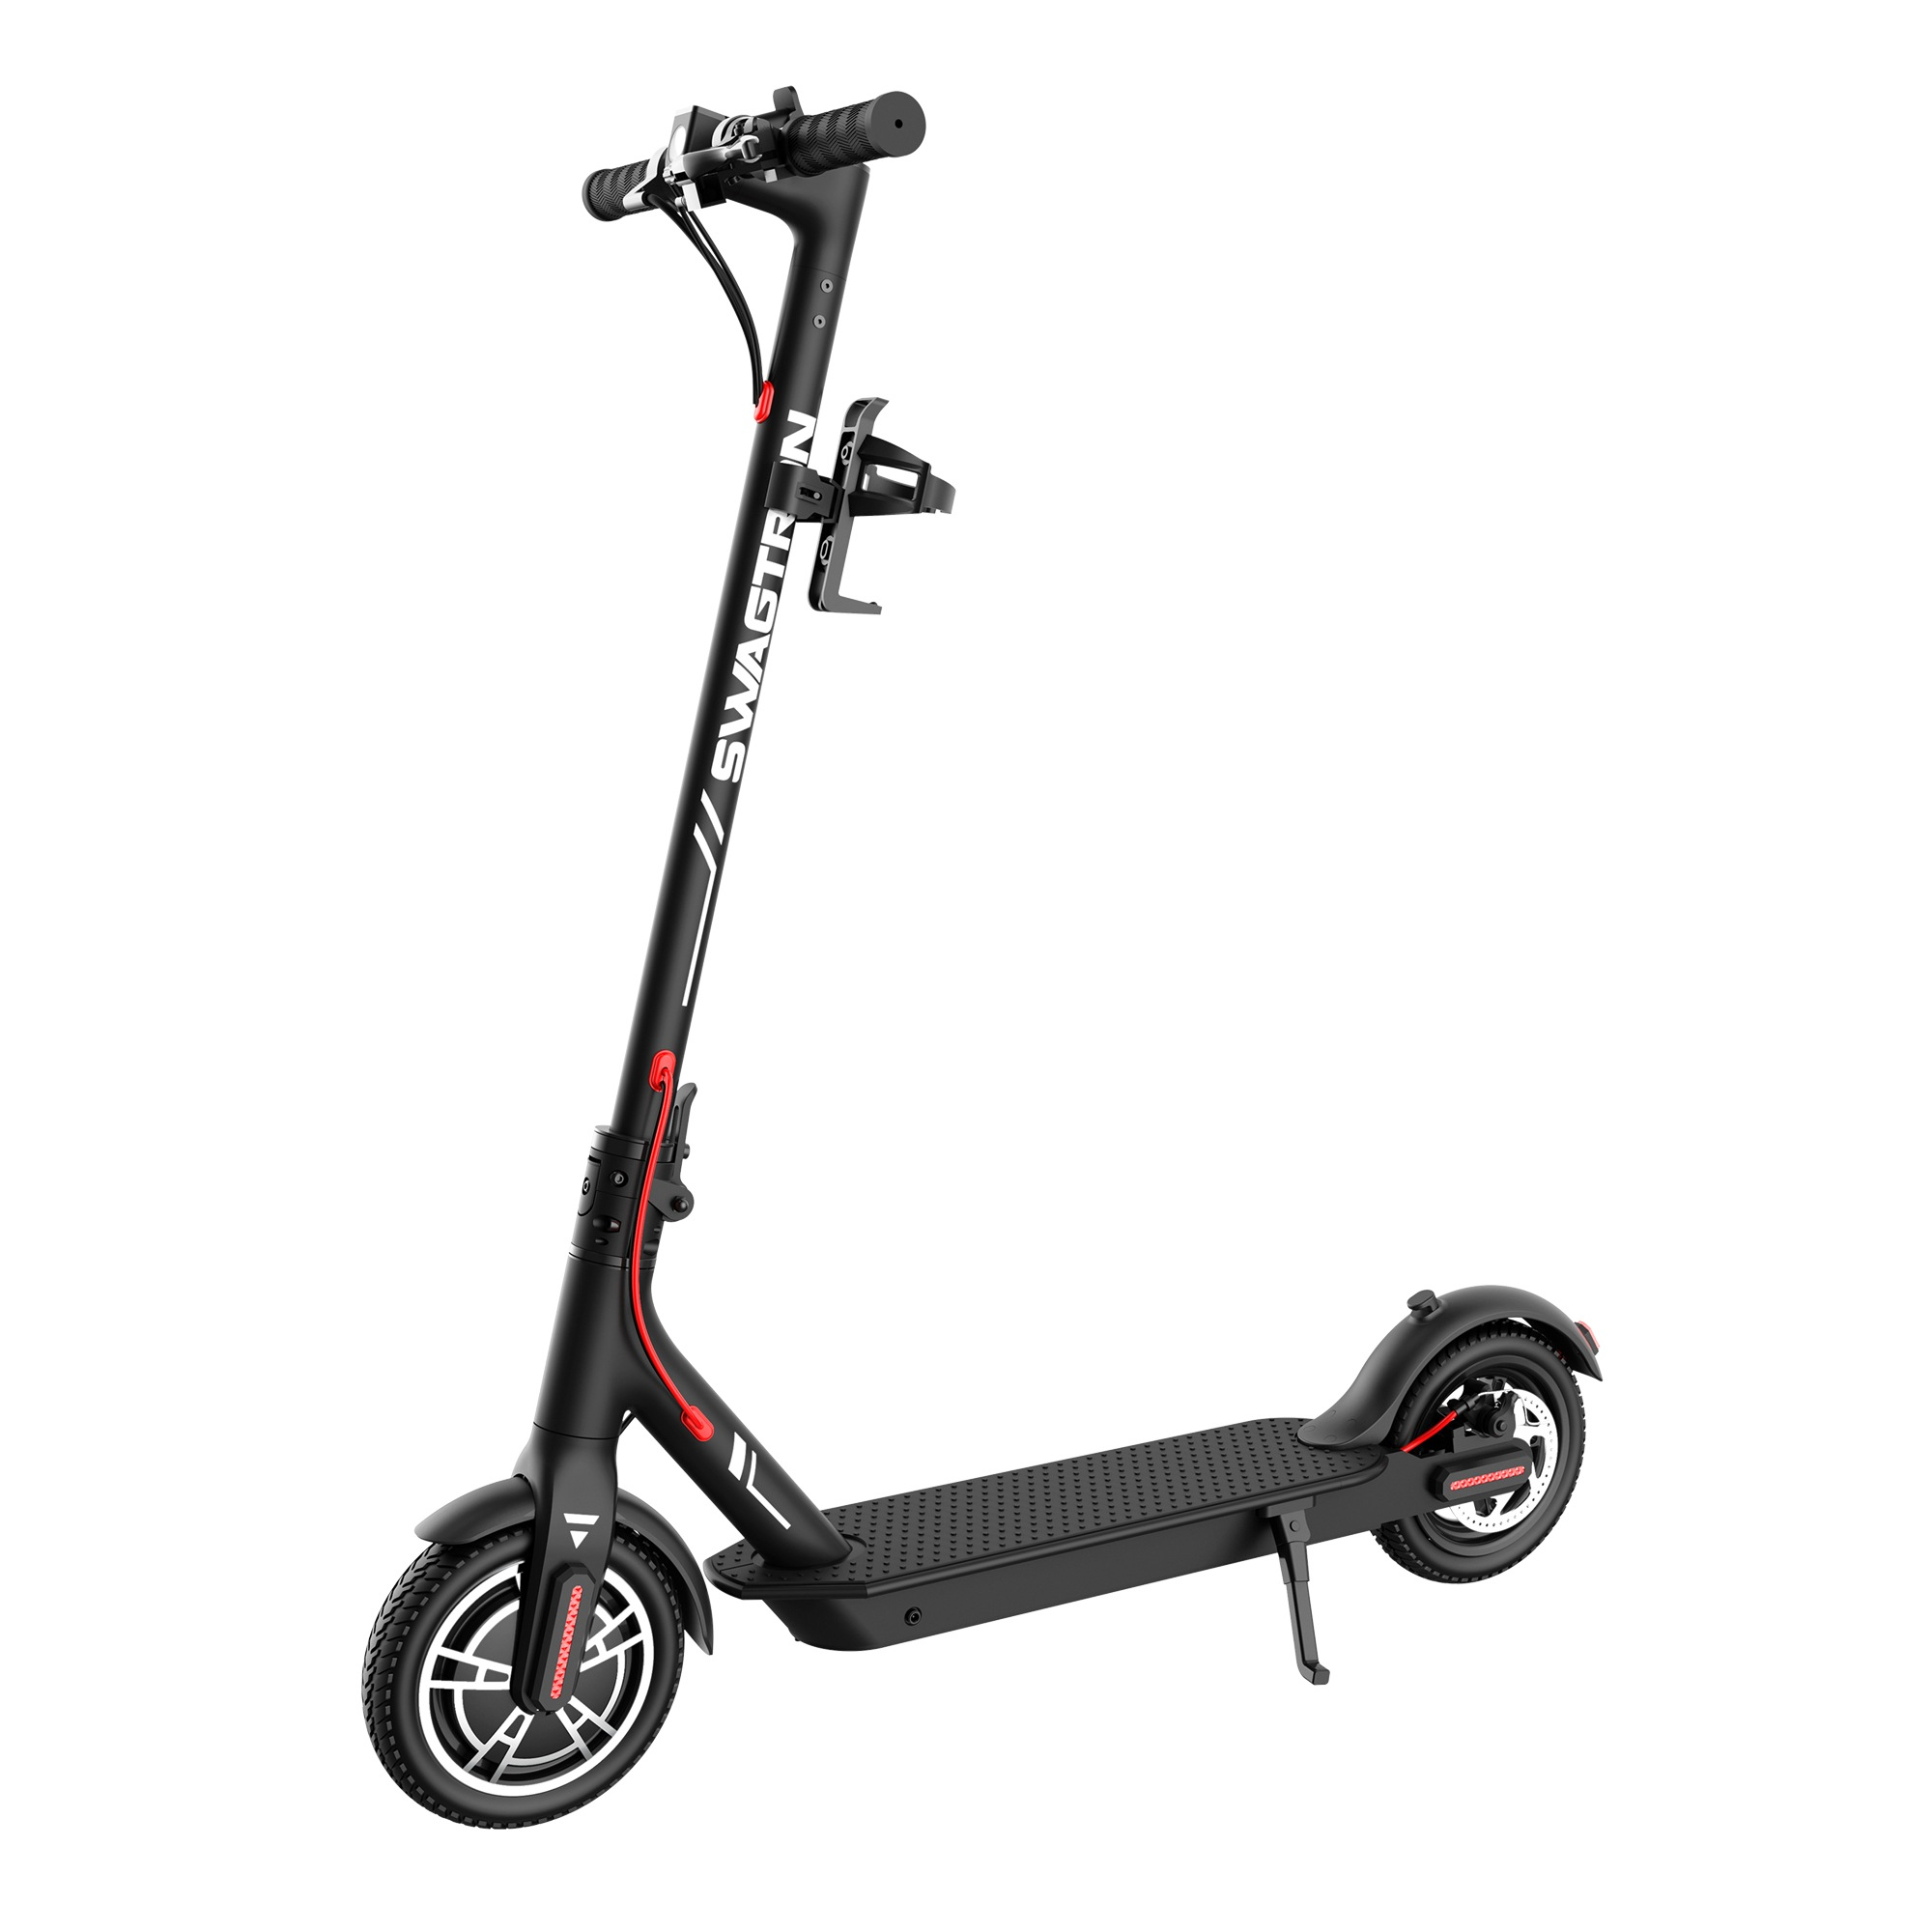 Electric Scooter - Swagger 5 Boost Black 2